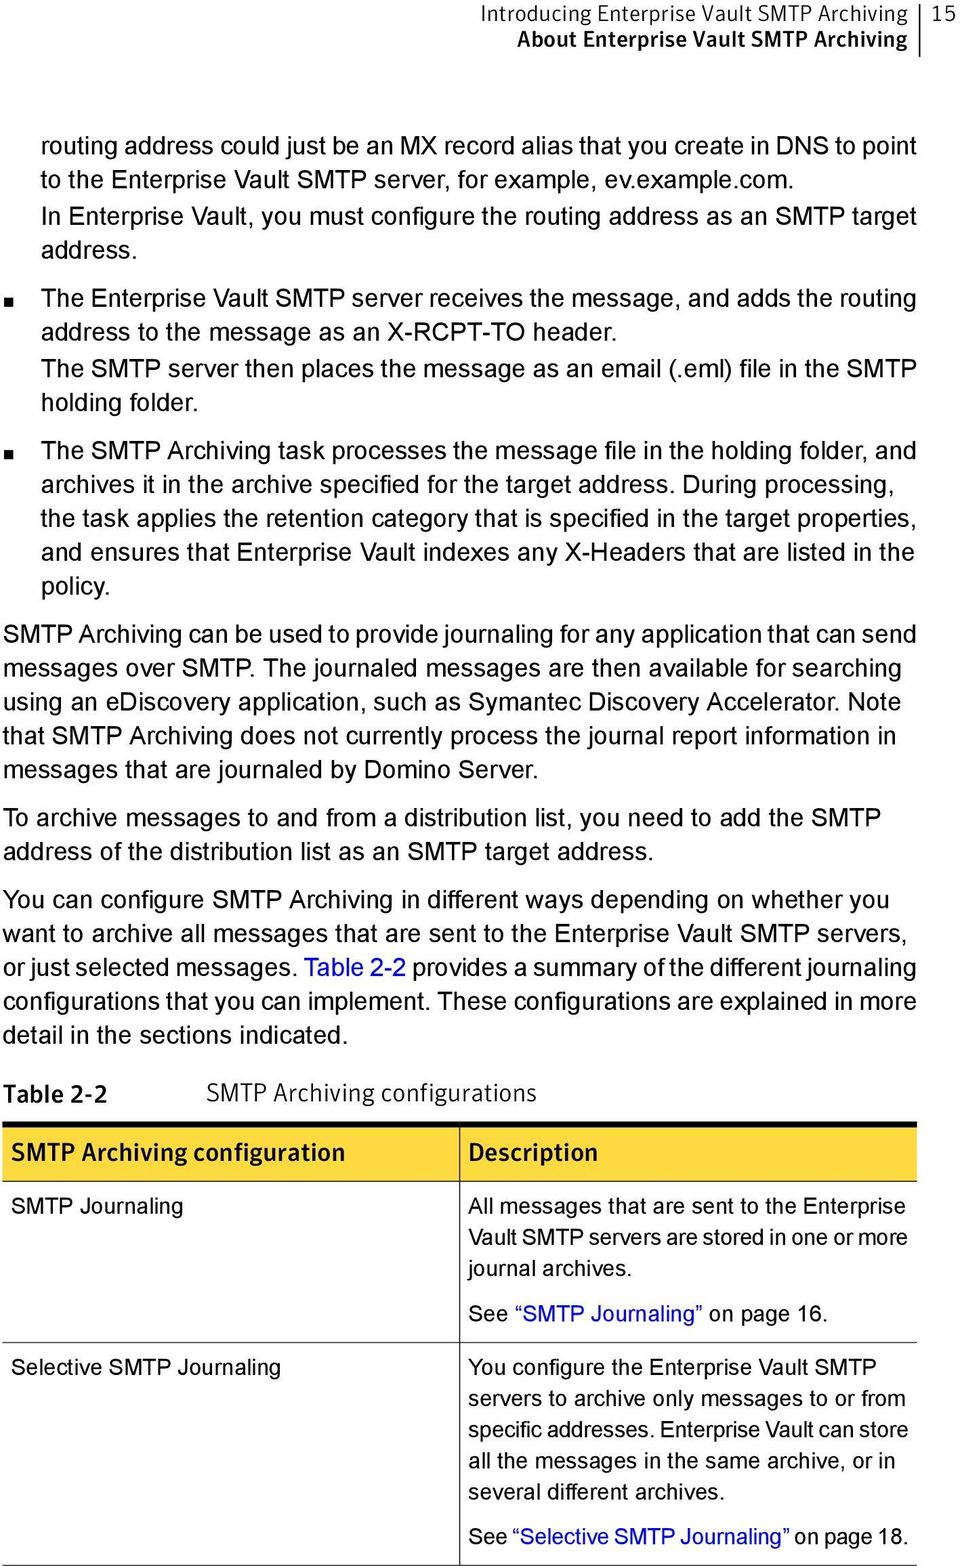 The Enterprise Vault SMTP server receives the message, and adds the routing address to the message as an X-RCPT-TO header. The SMTP server then places the message as an email (.